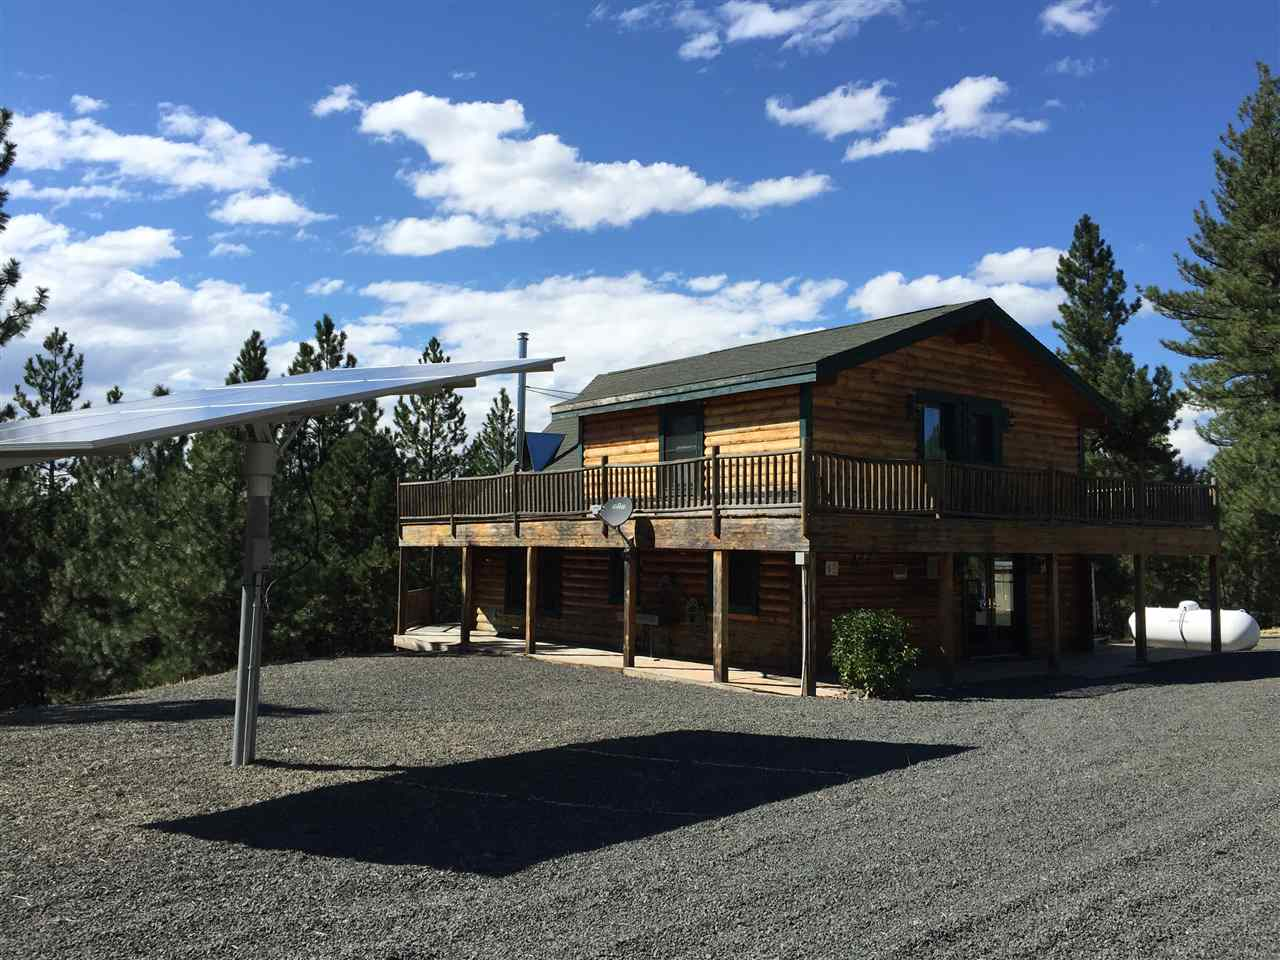 Single Family Home for Sale at 159 Jack Pine Rd 159 Jack Pine Rd Cottonwood, Idaho 83522